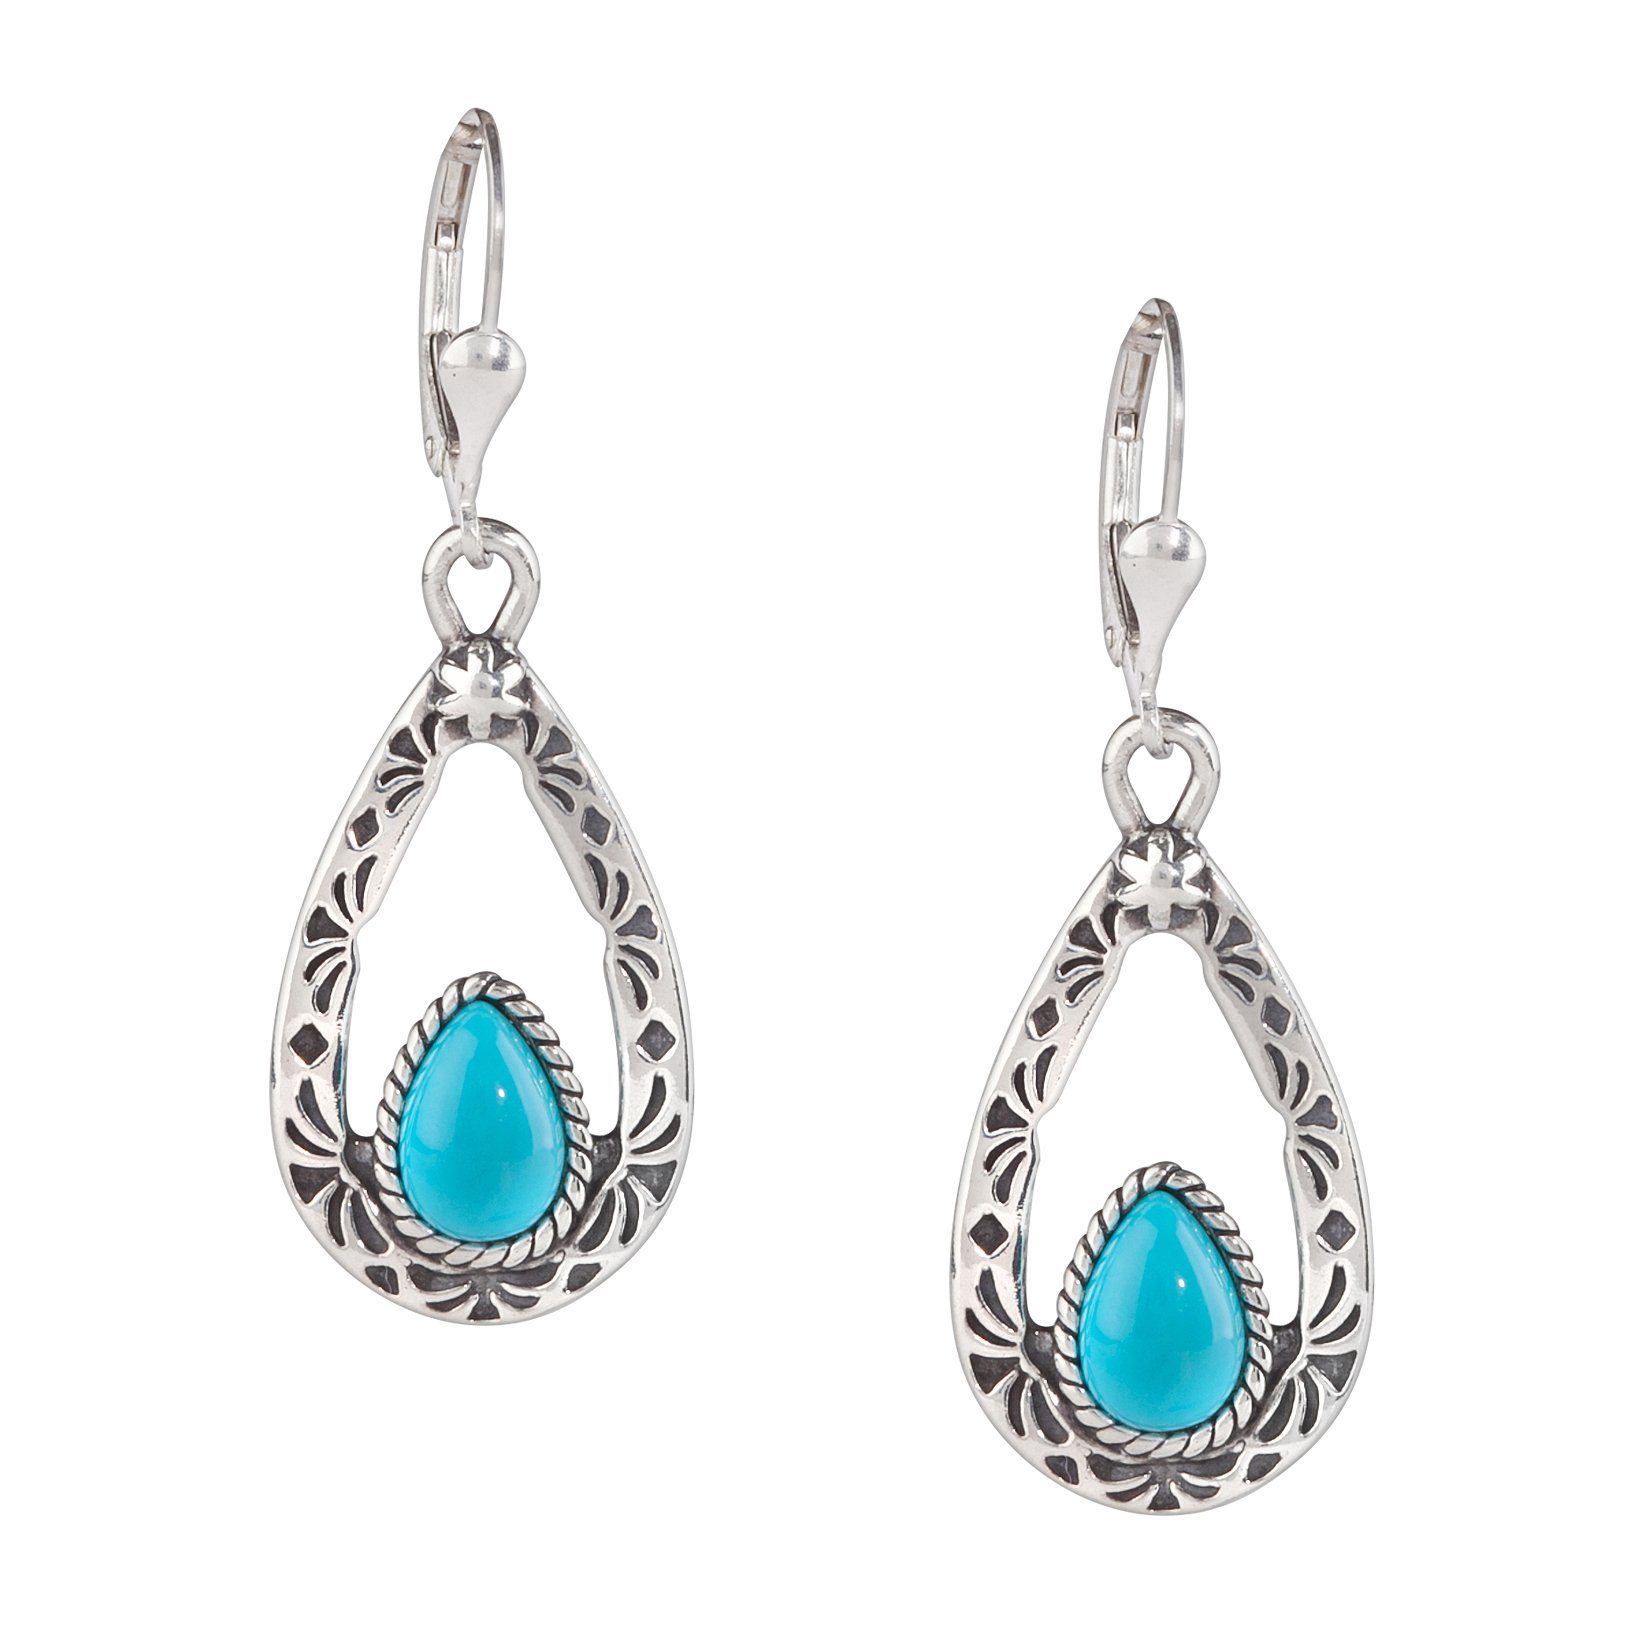 American West Sterling Silver Sleeping Beauty Turquoise Dangle Earrings